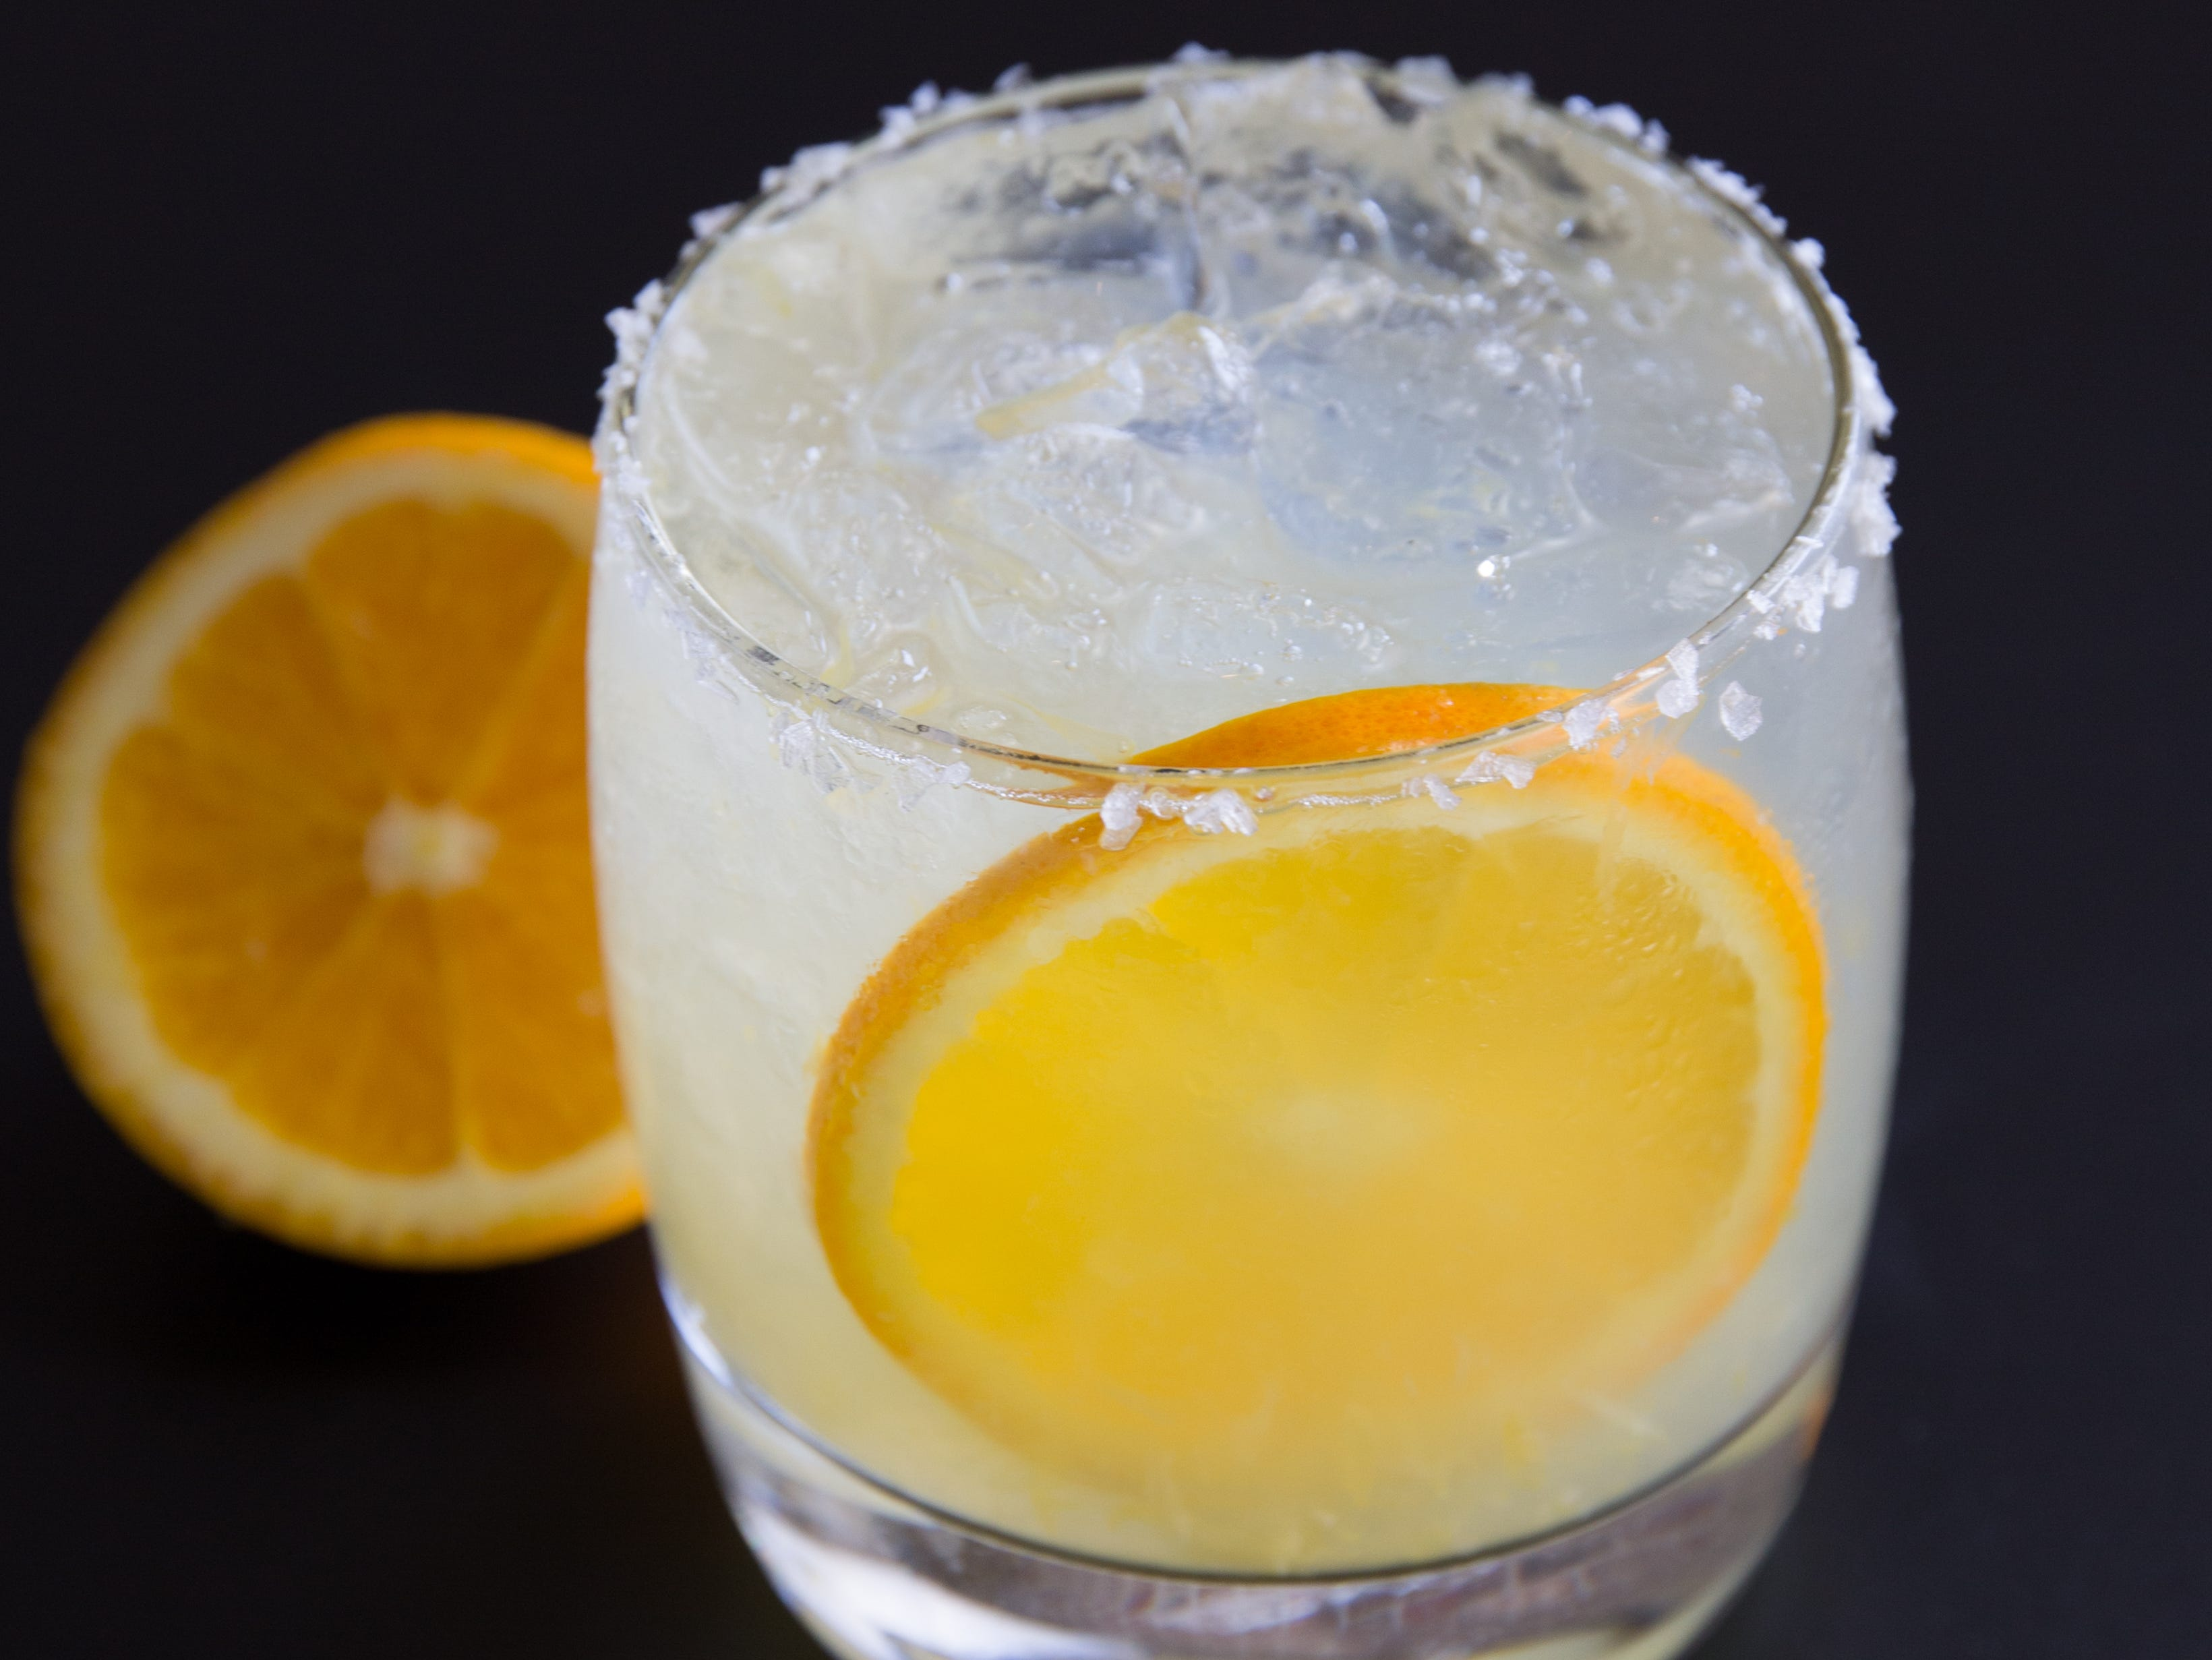 CRUjiente Tacos | Starting at noon, quench your thirst with $5 signature Premier CRU Margaritas made with 100 percent blue agave tequila, house agave syrup, fresh squeezed lime and muddled orange. Details: 3961 E. Camelback Road, Phoenix. 602-687-7777, crutacos.com